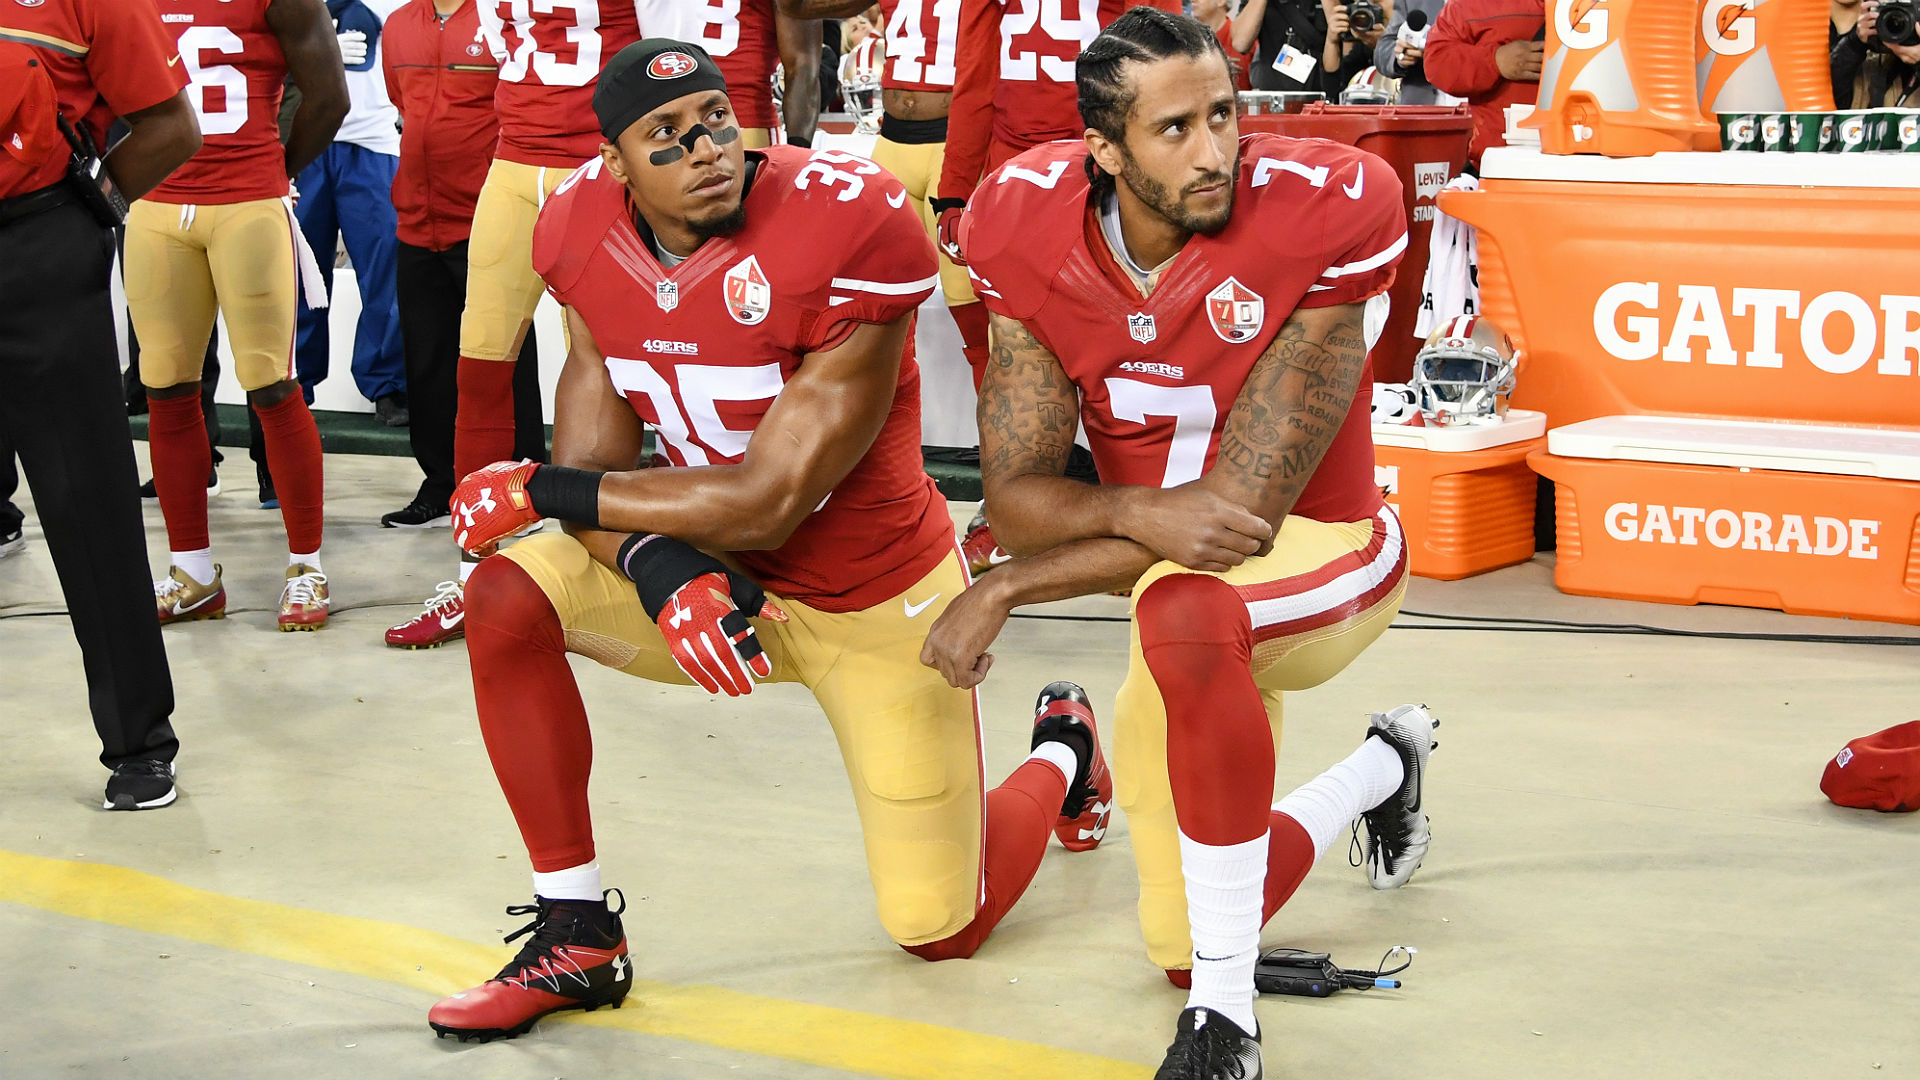 Colin Kaepernick's NFL settlement amount likely far smaller than speculated, report says